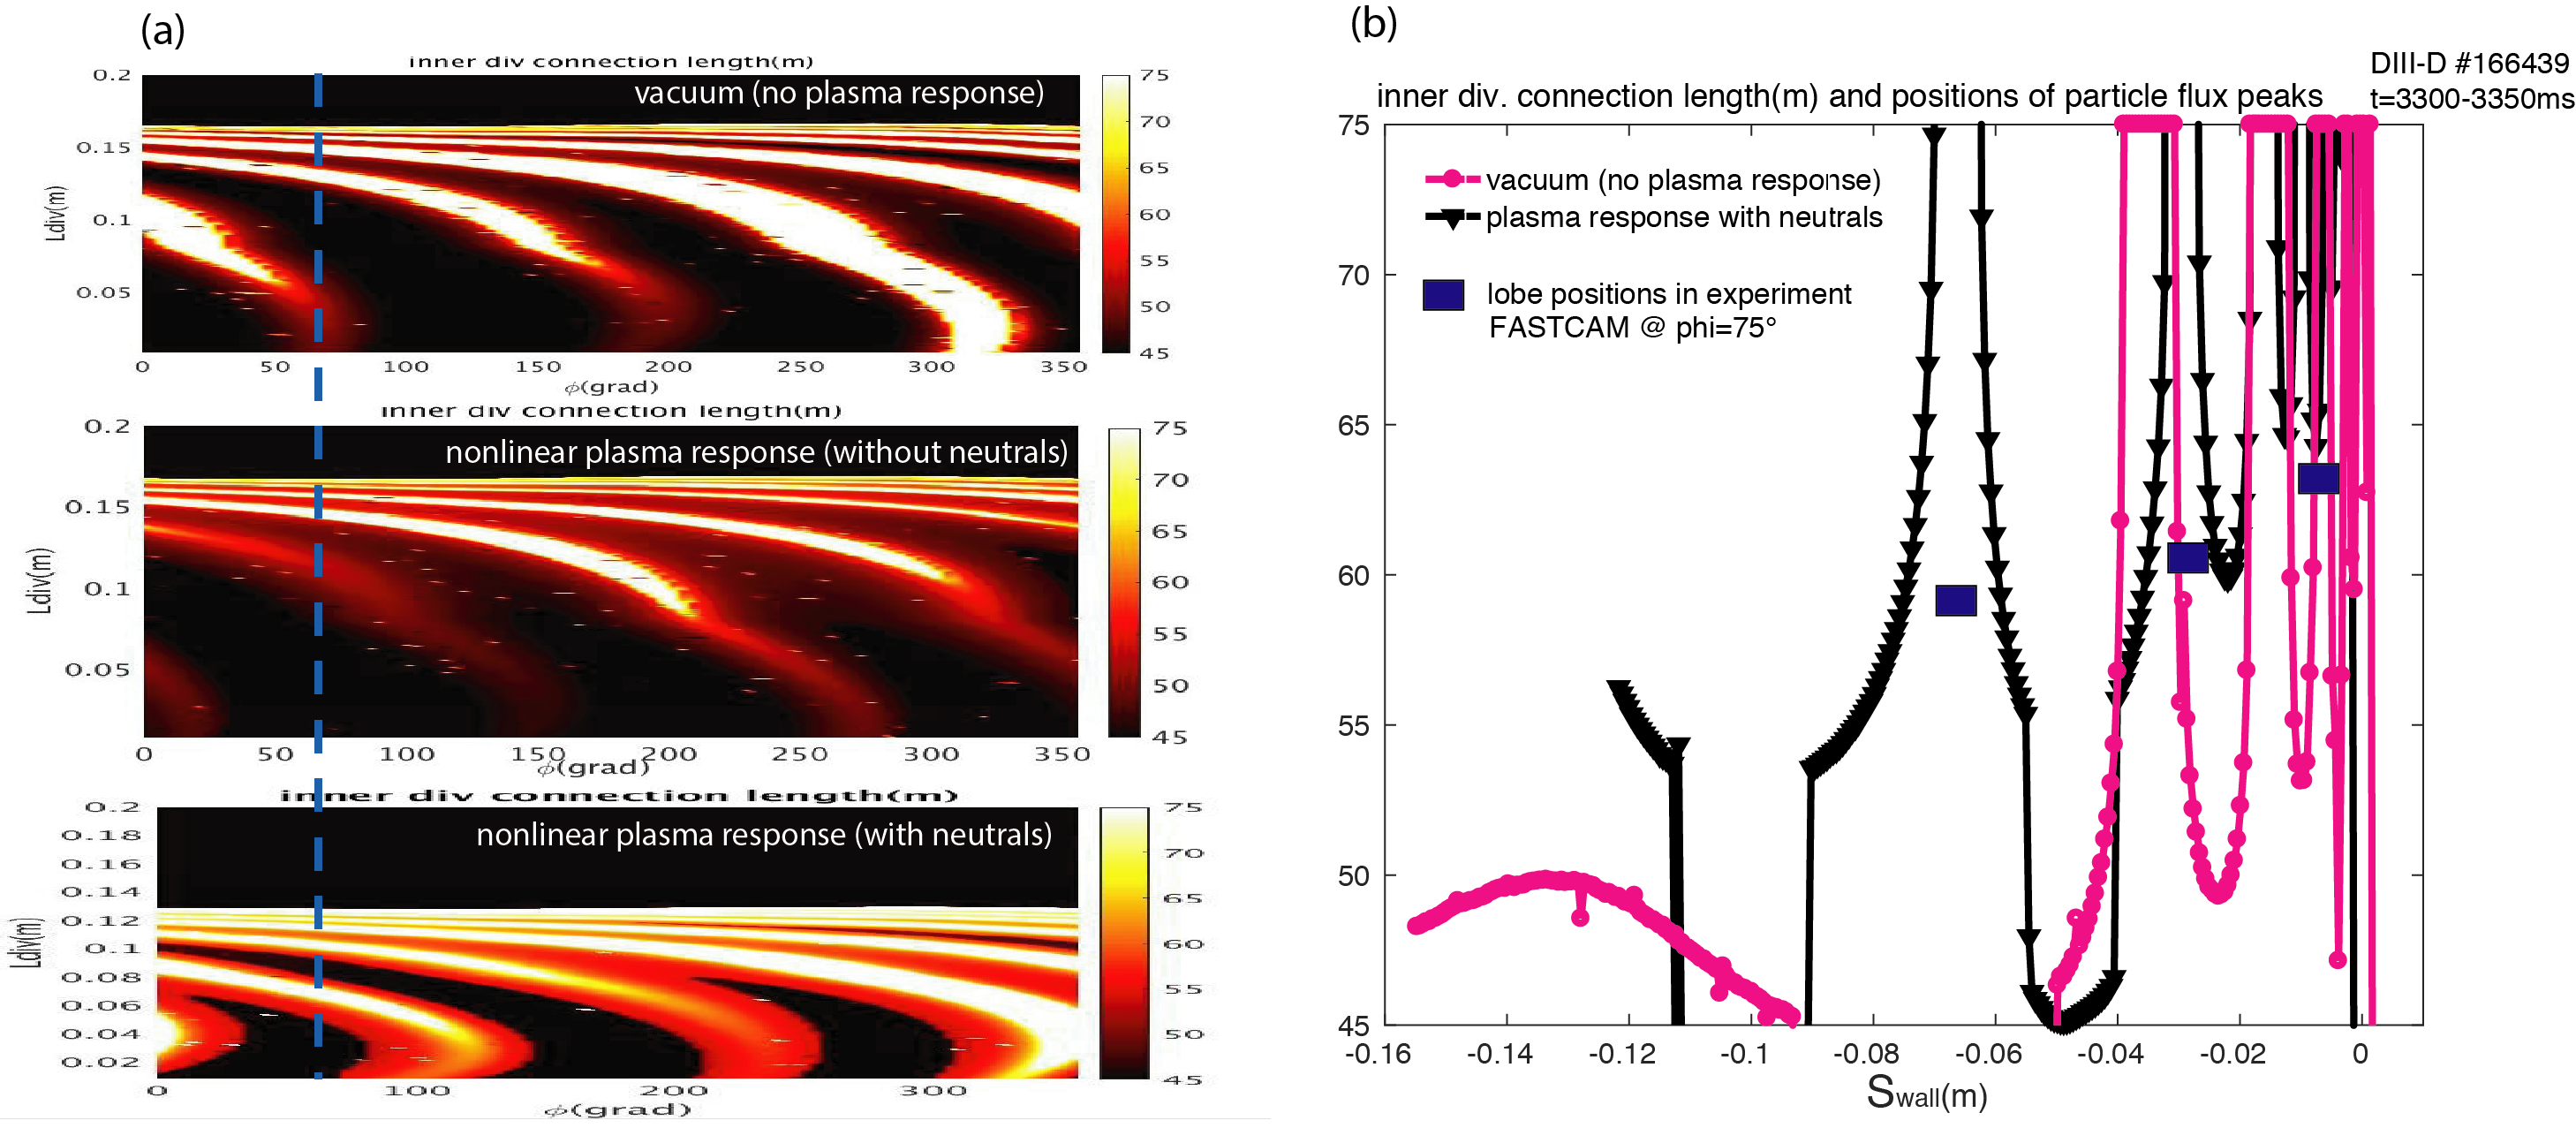 (a) HFS divertor footprints in JOREK simulations without plasma response (top), with plasma response without neutrals (middle) and with neutrals (bottom). Dashed line indicates location of visual imaging camera. (b) Comparison of measured HFS divertor particle flux striation peaks (blue bars) with vacuum (magenta) and nonlinear plasma response with neutrals (black) JOREK MHD simulations in DIII-D discharge 166439 at 3300 ms. Field lines with connection lengths of 75 m and longer correspond to particle flux lobes on the 45-degree tile and the center post.